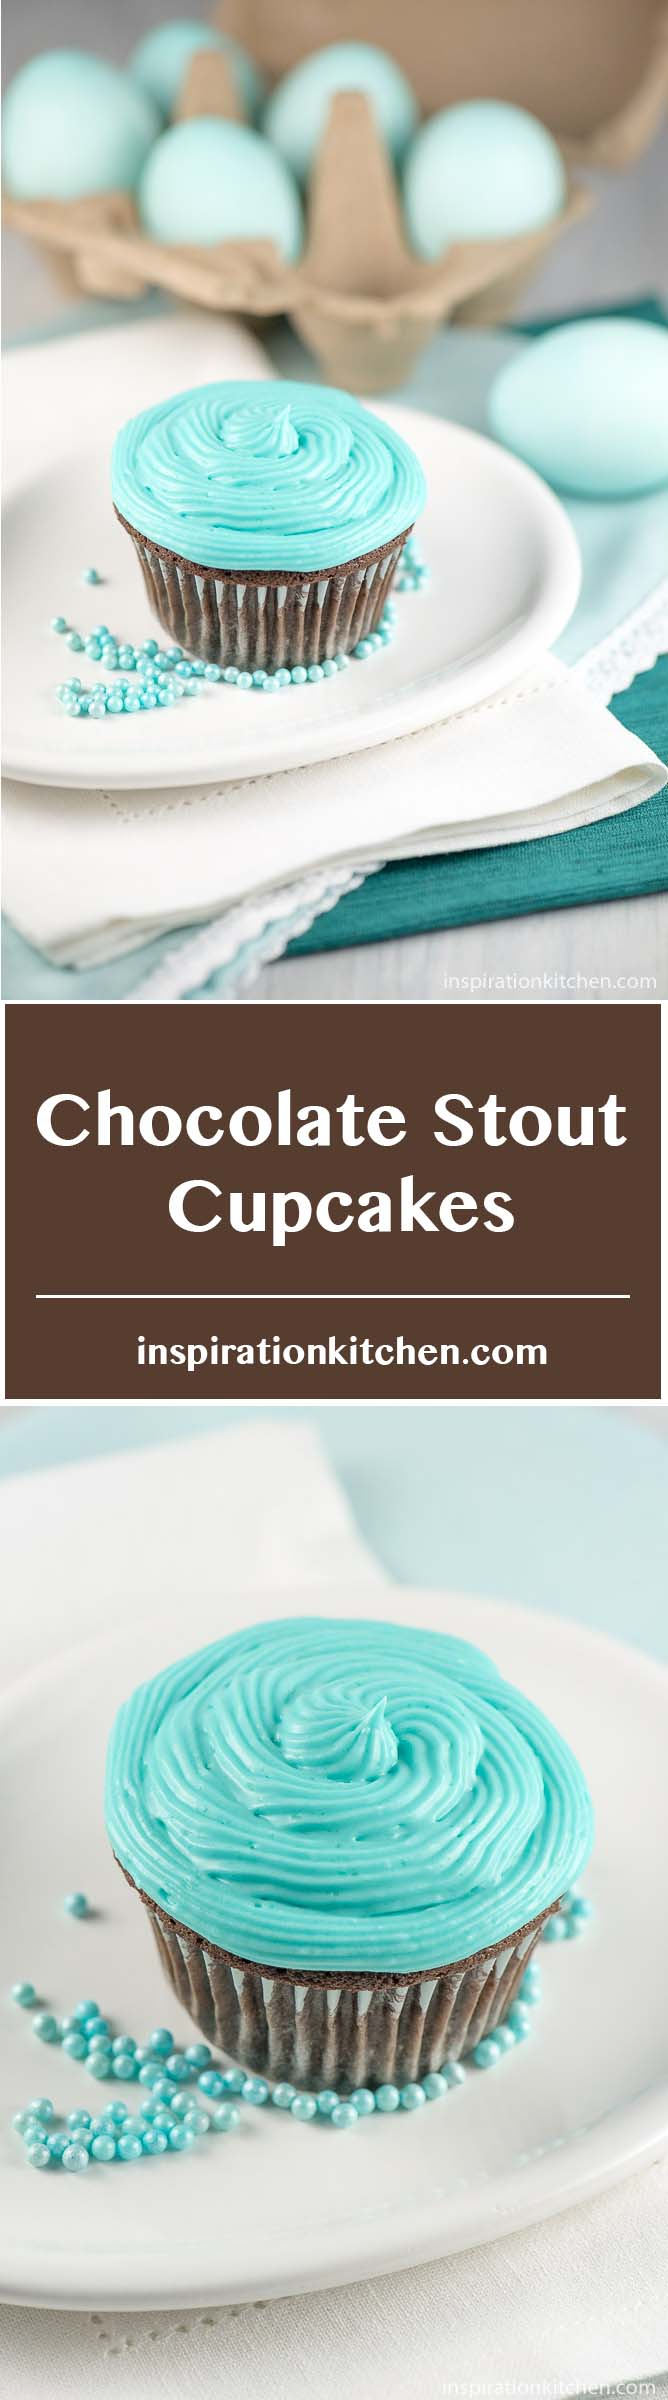 Chocolate Stout Cupcakes - inspirationkitchen.com